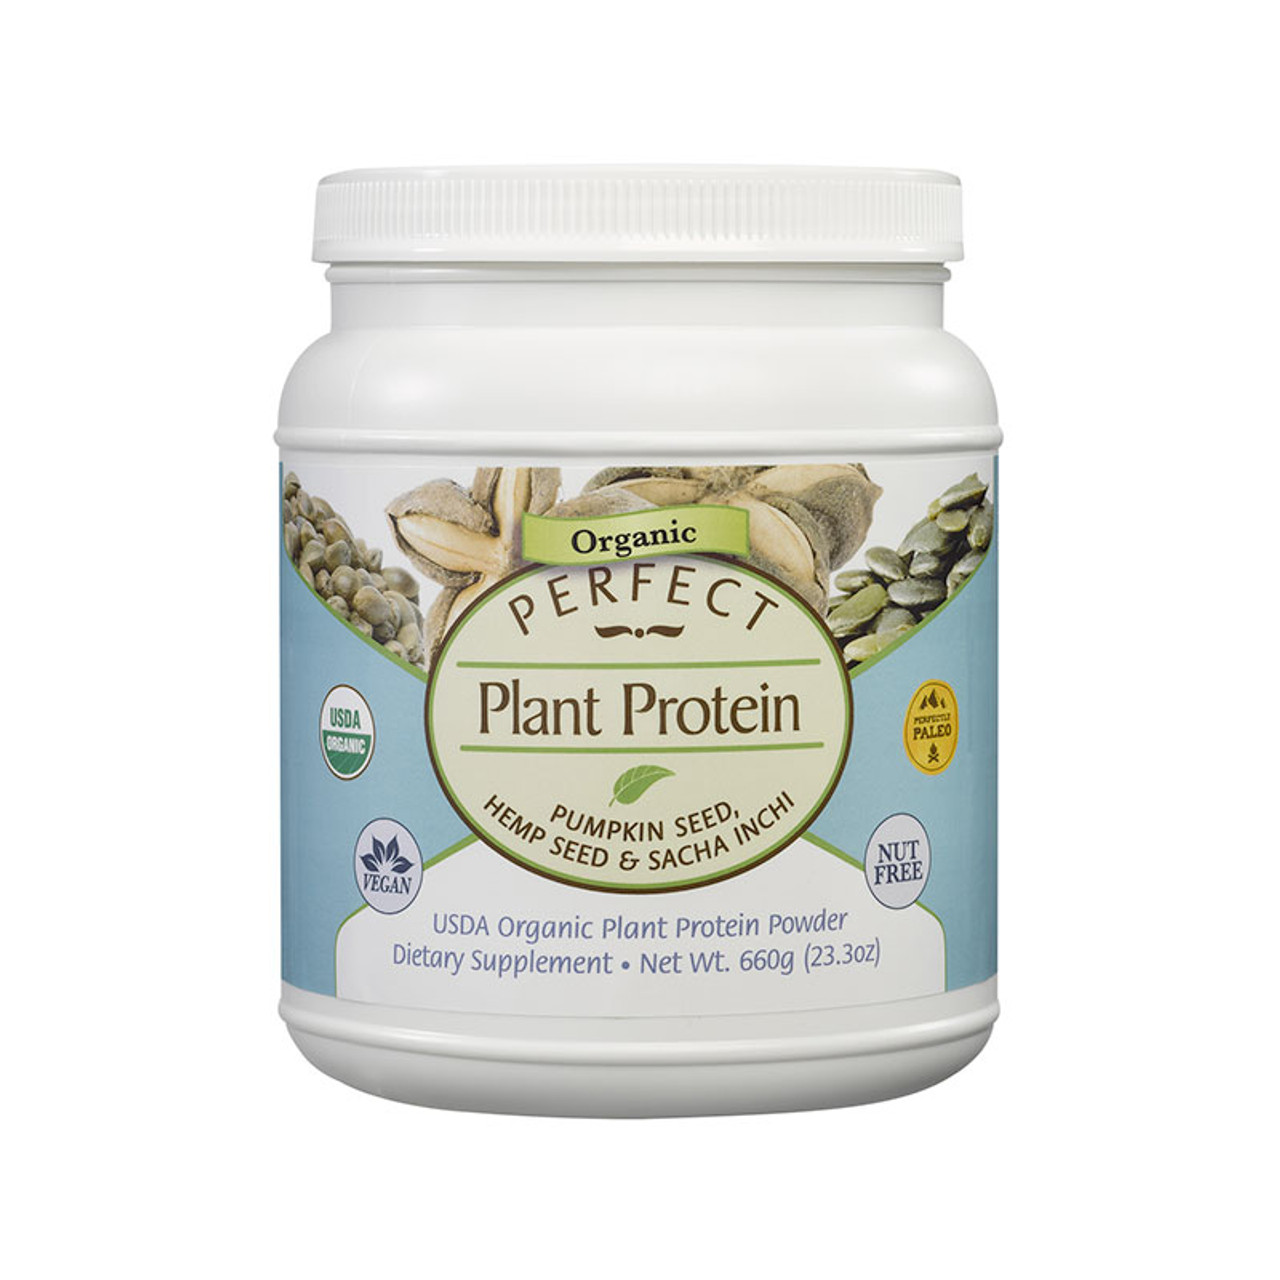 Front view for a bottle of organic, vegan and ethically sourced Perfect Plant Protein.